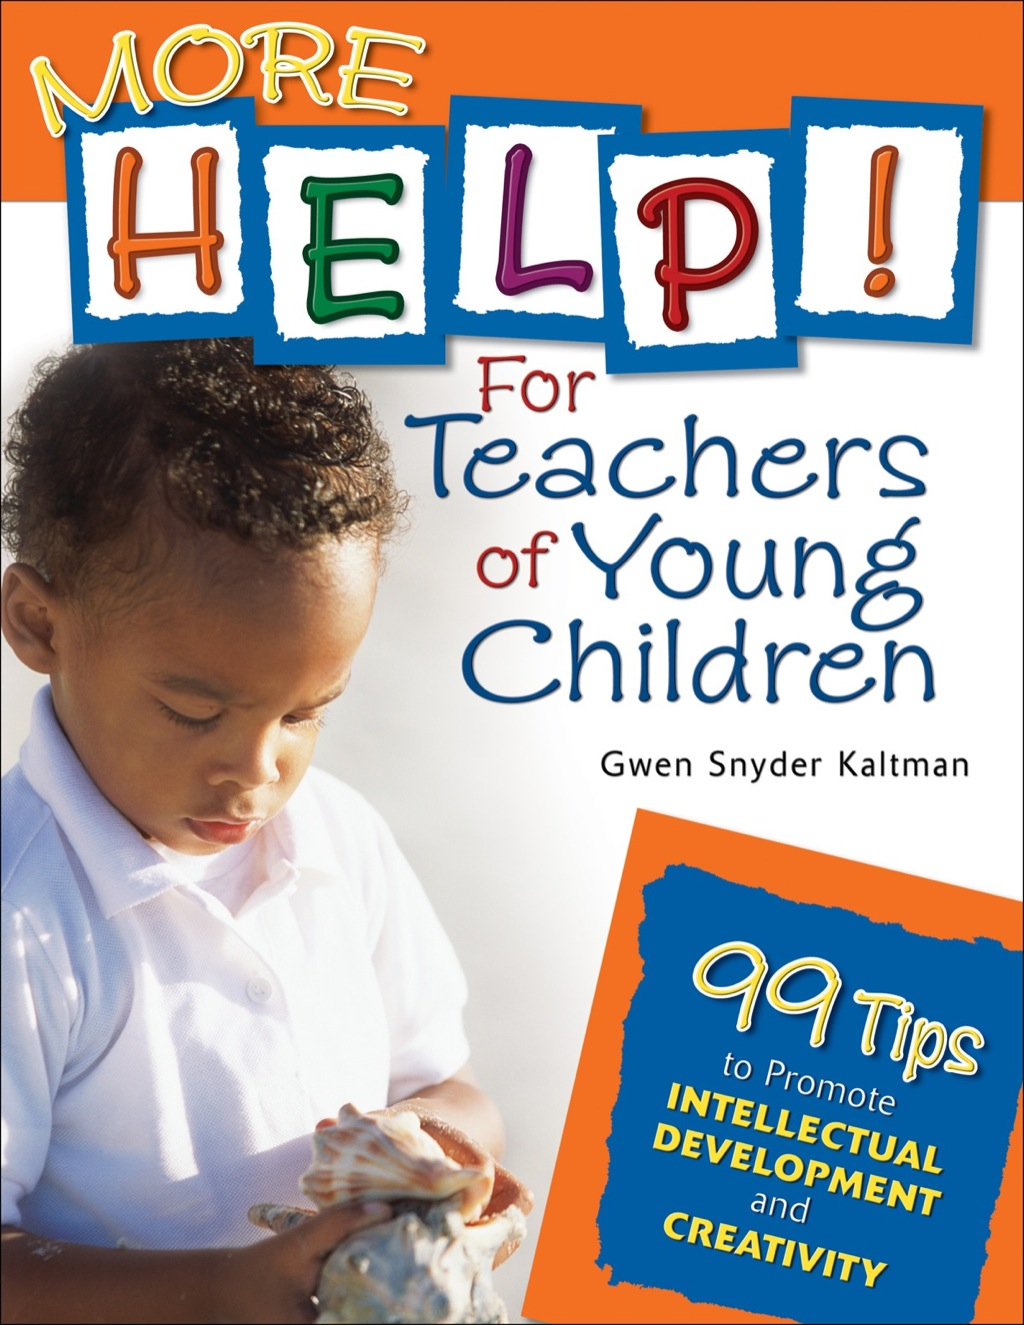 More Help! For Teachers Of Young Children: 99 Tips To Promote Intellectual Development And Creativity (ebook)